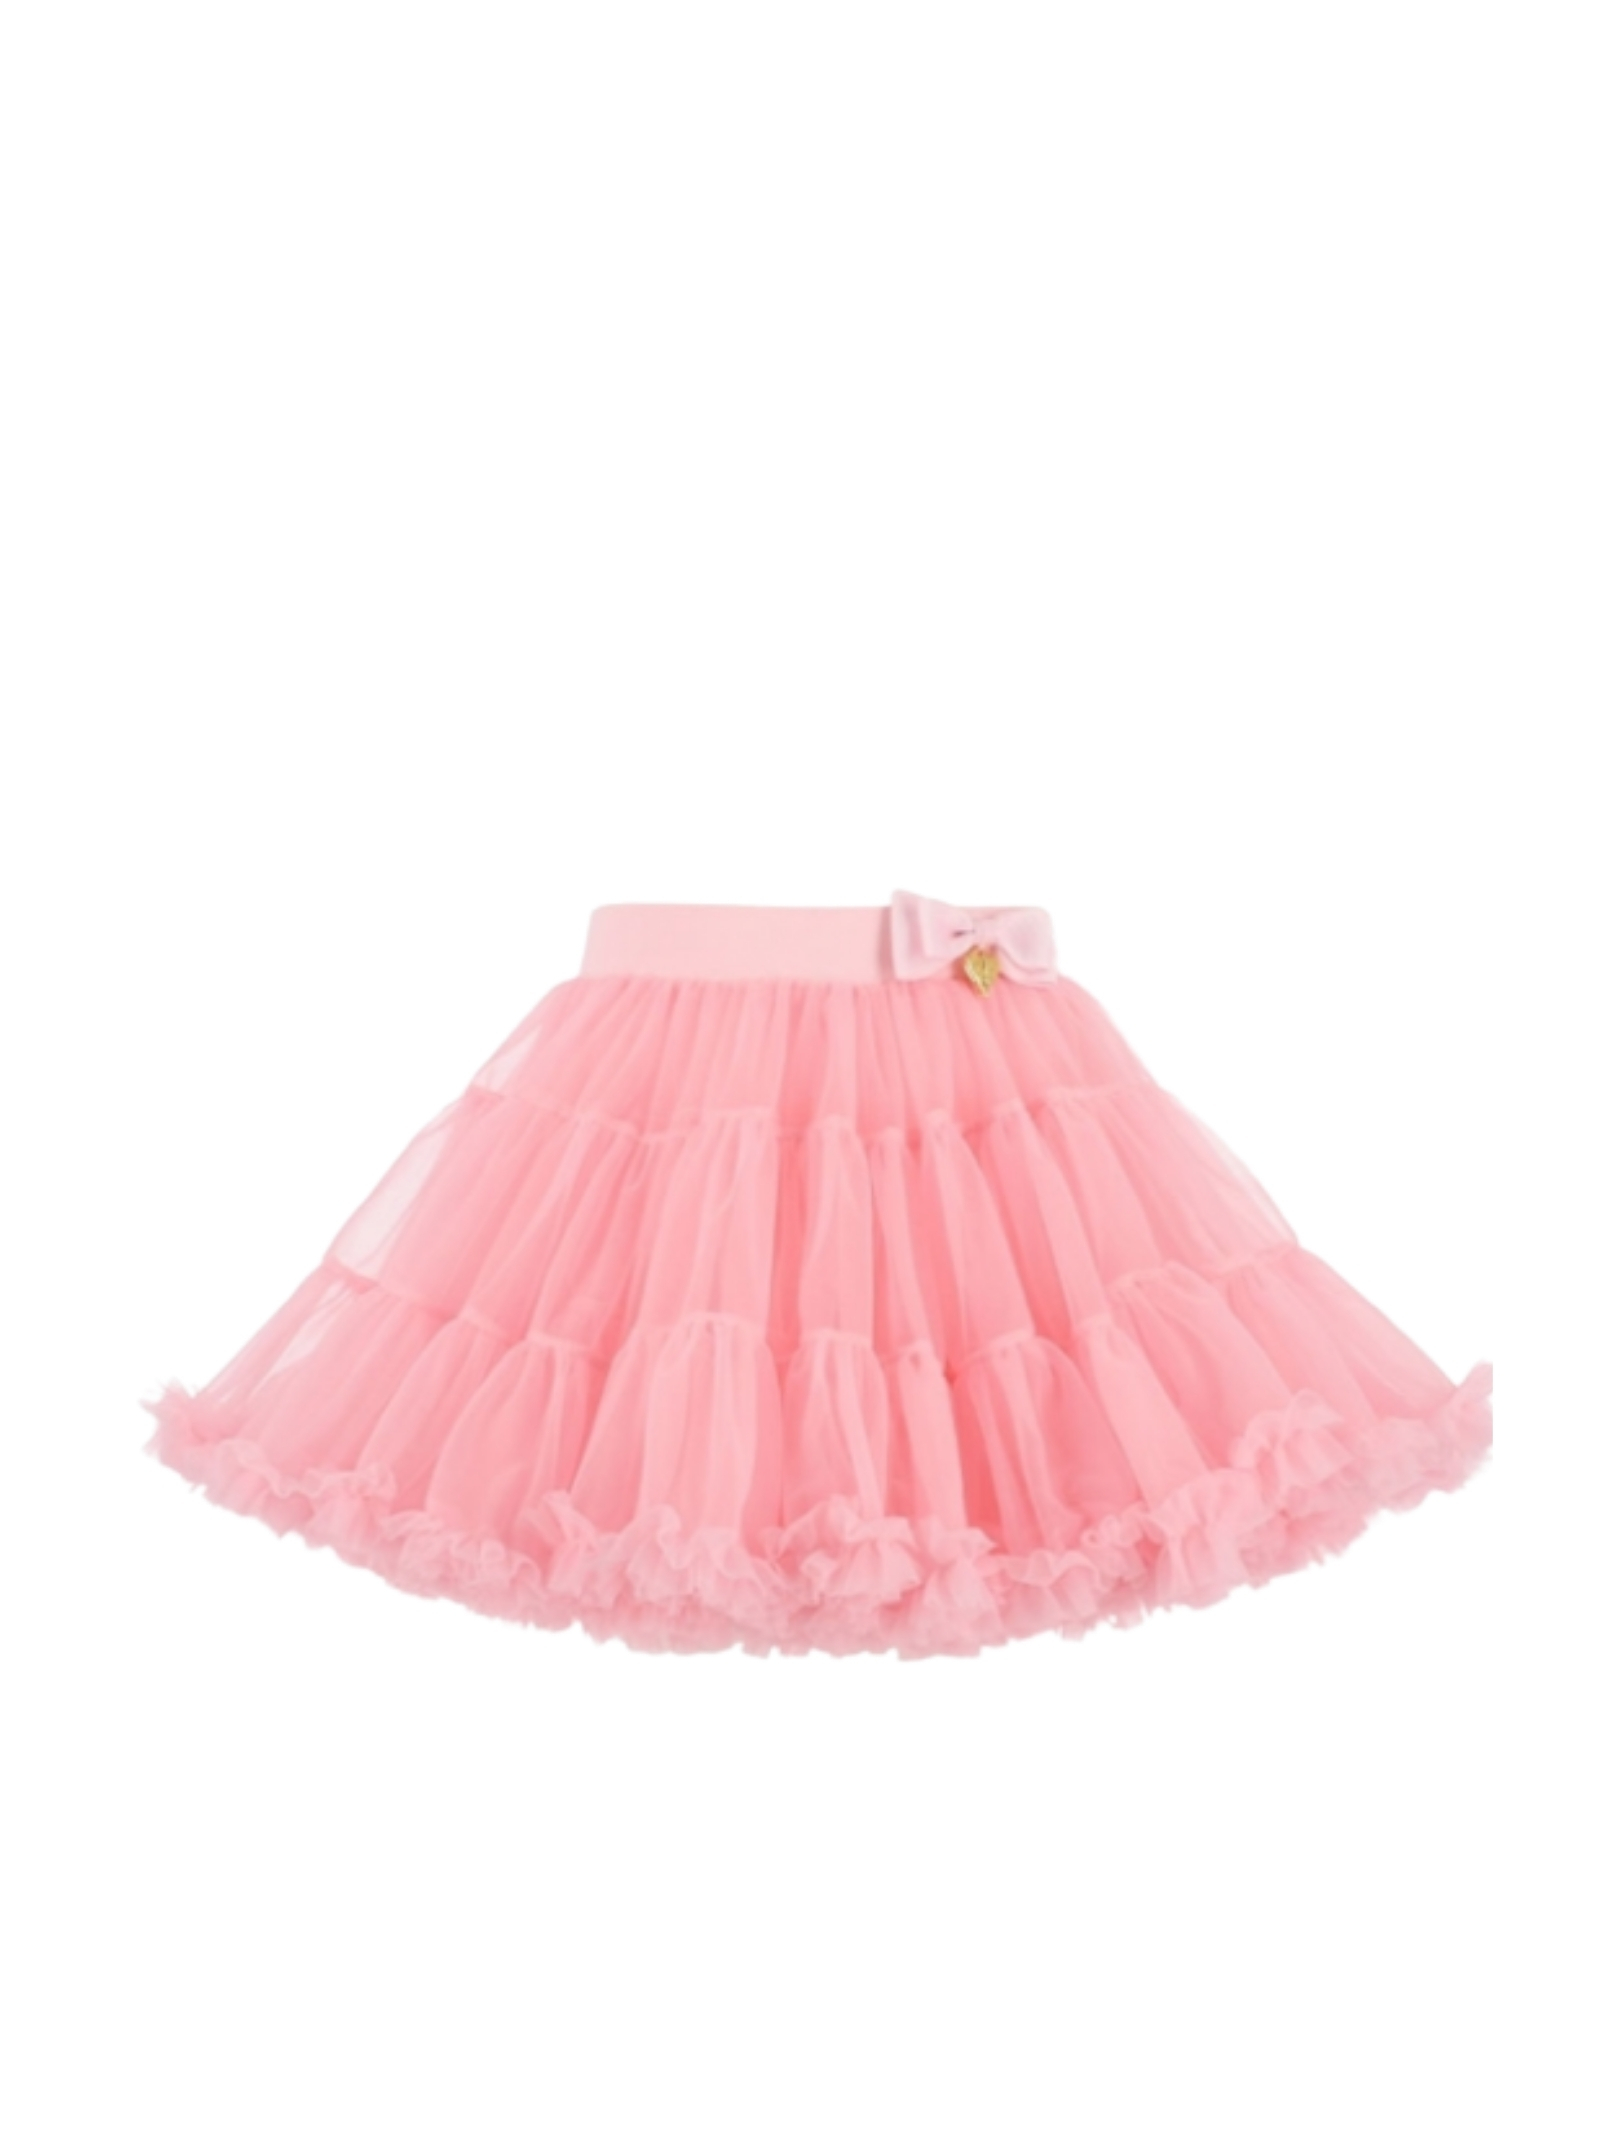 Gonna Bambina Tutu Pixie Fairy Pink ANGEL'S FACE | Gonne | PIXIEFAIRY PINK